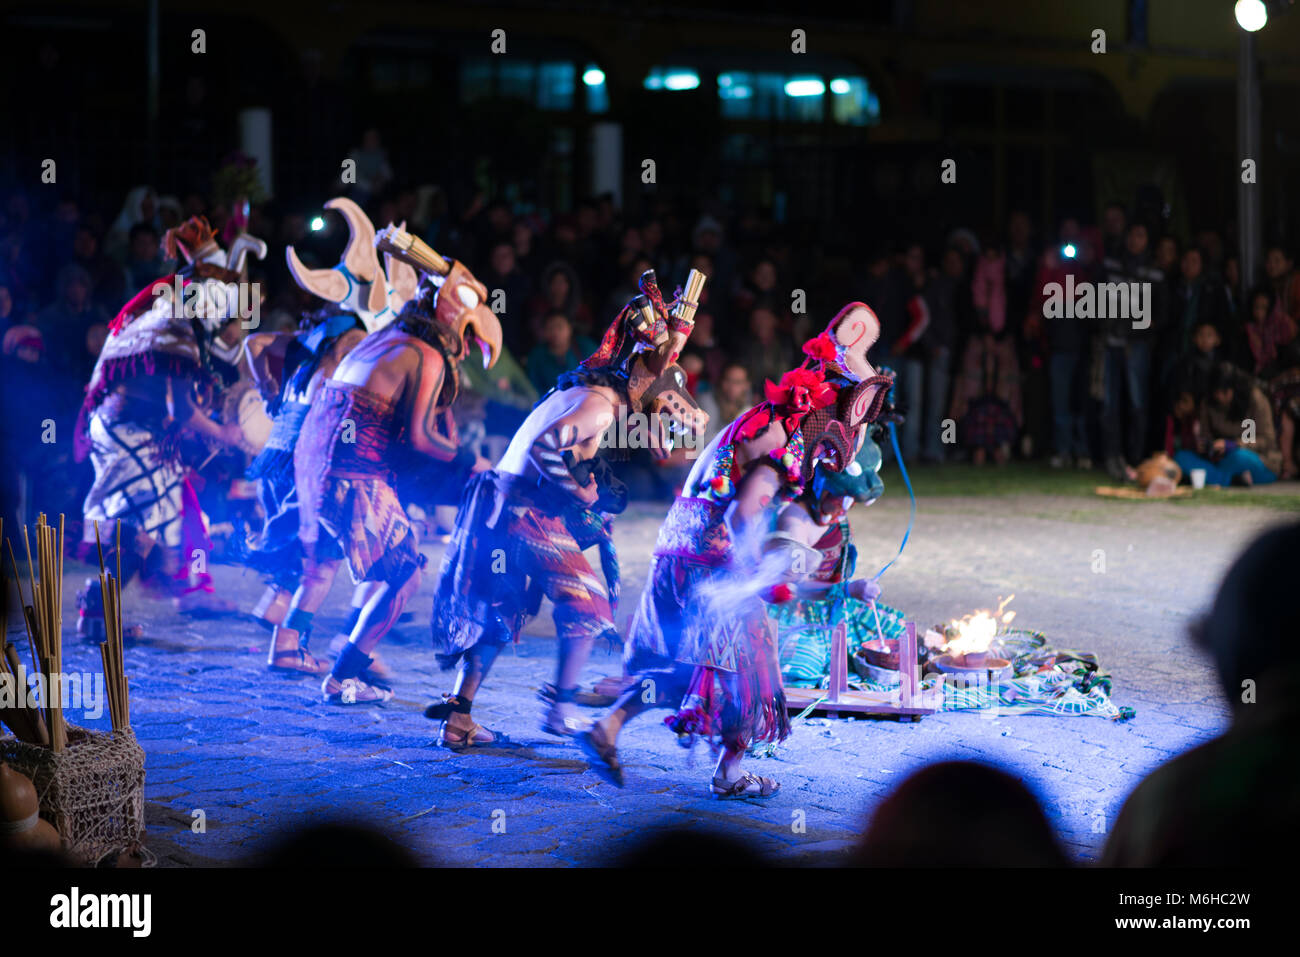 Performers dressed as jaguars at a theatrical re-enactment of an ancient Mayan ritual at the 2013 Rukux festival - Stock Image